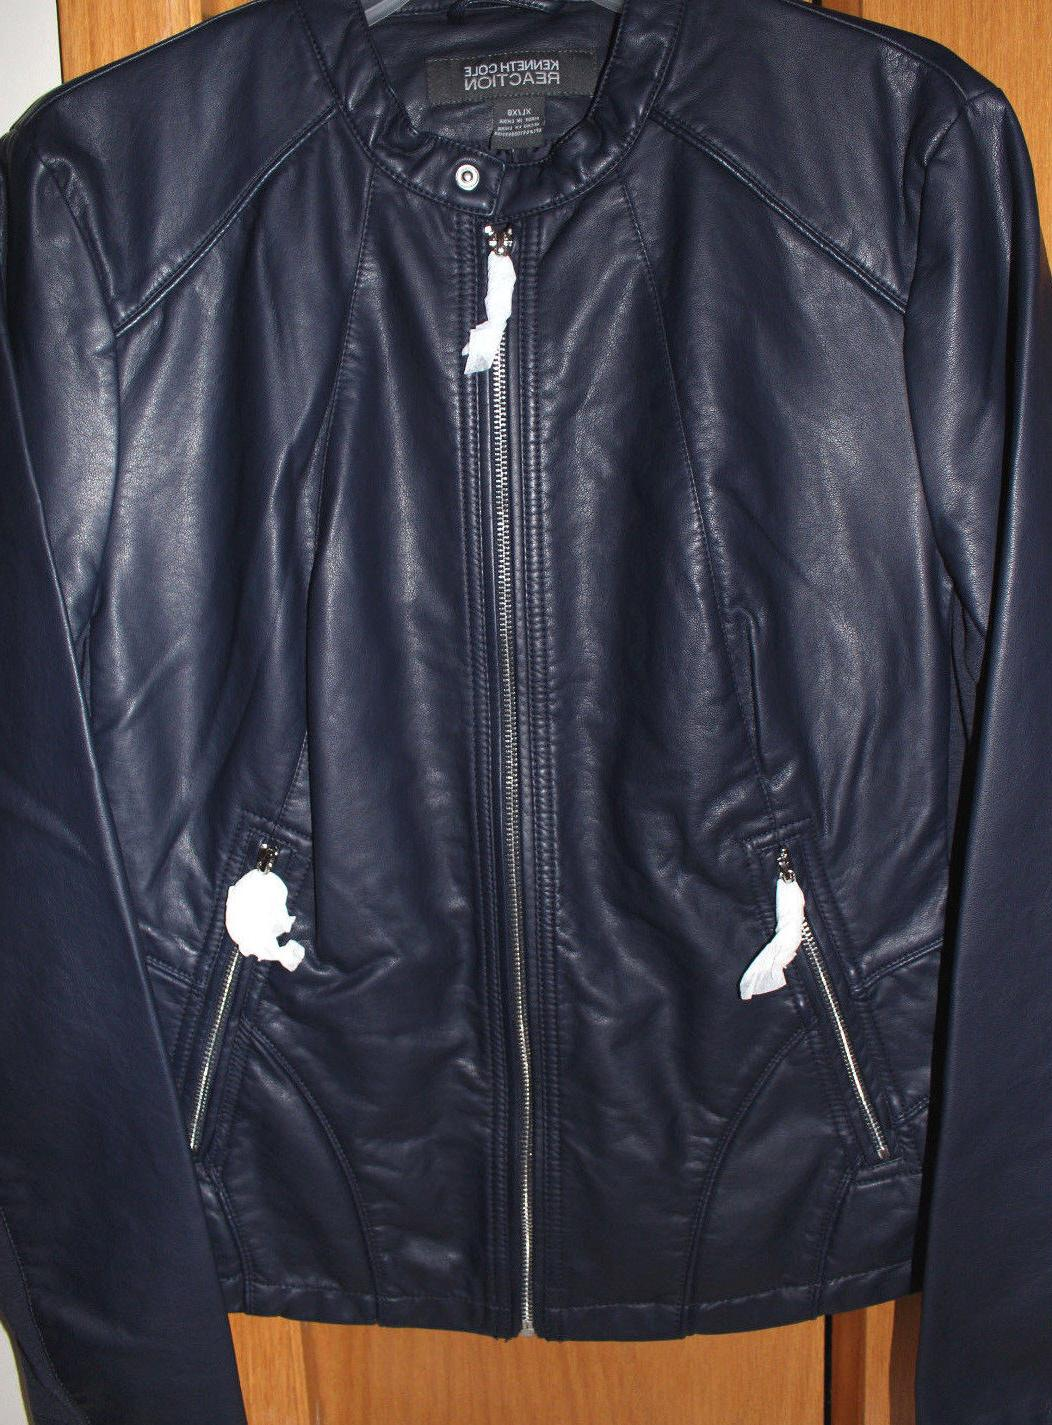 nwt ladies leather jackets motorcycle style black